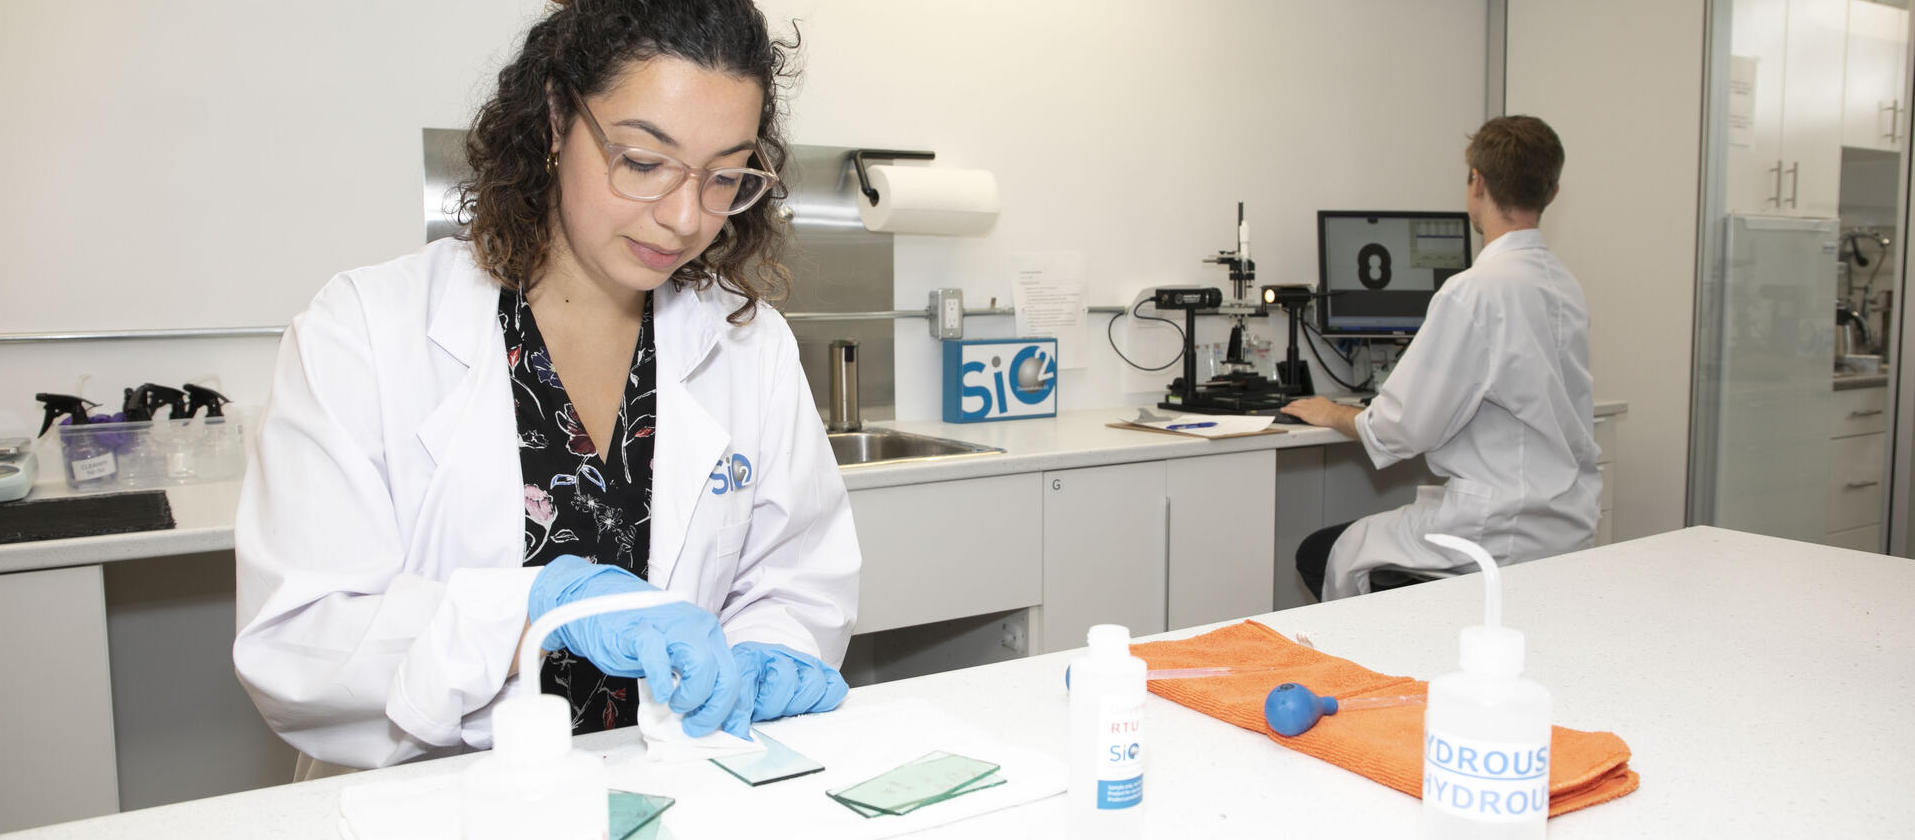 Female working in at a lab bench with male at fume hood in background